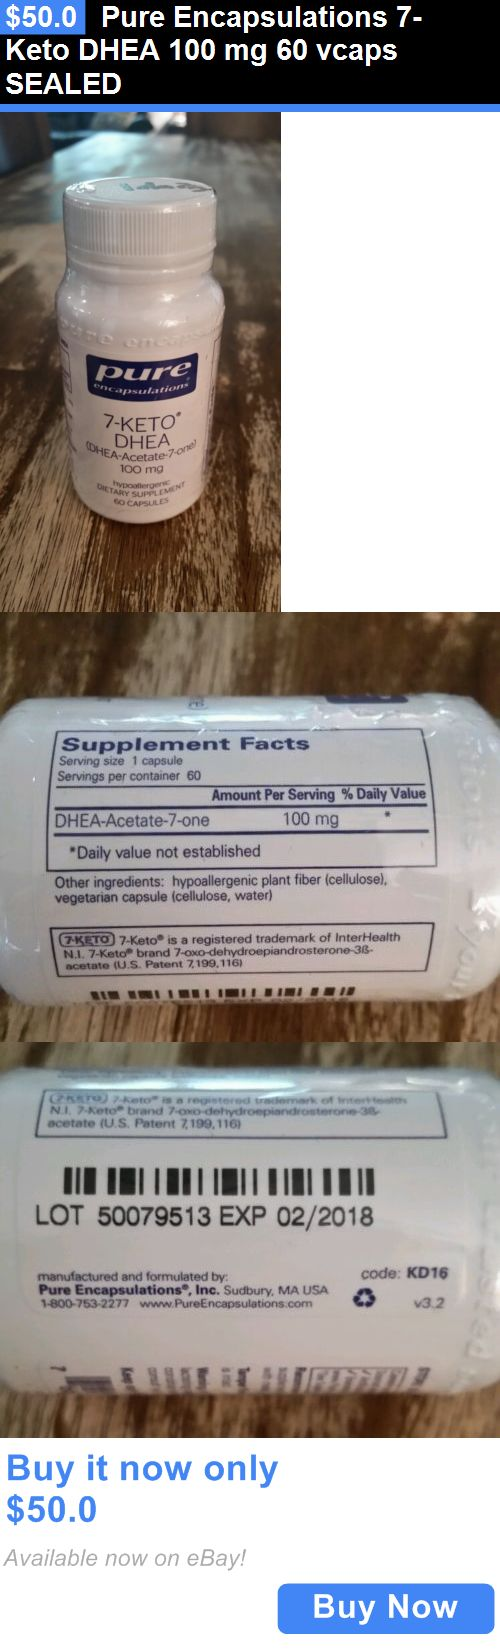 Other Natural Remedies: Pure Encapsulations 7-Keto Dhea 100 Mg 60 Vcaps Sealed BUY IT NOW ONLY: $50.0